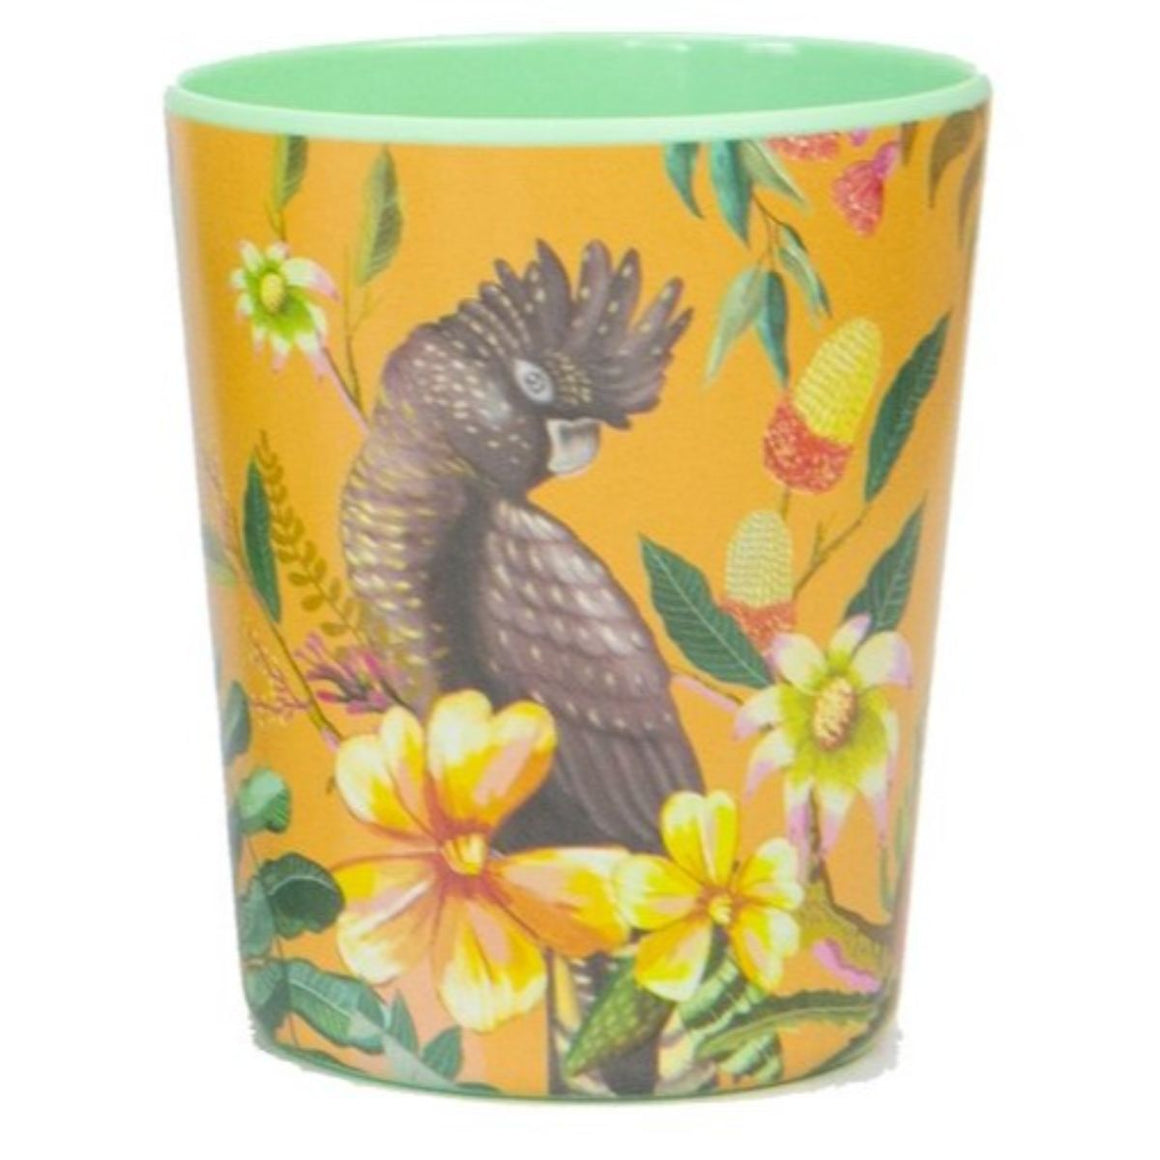 Cup featuring Australian florals and a black cockatoo